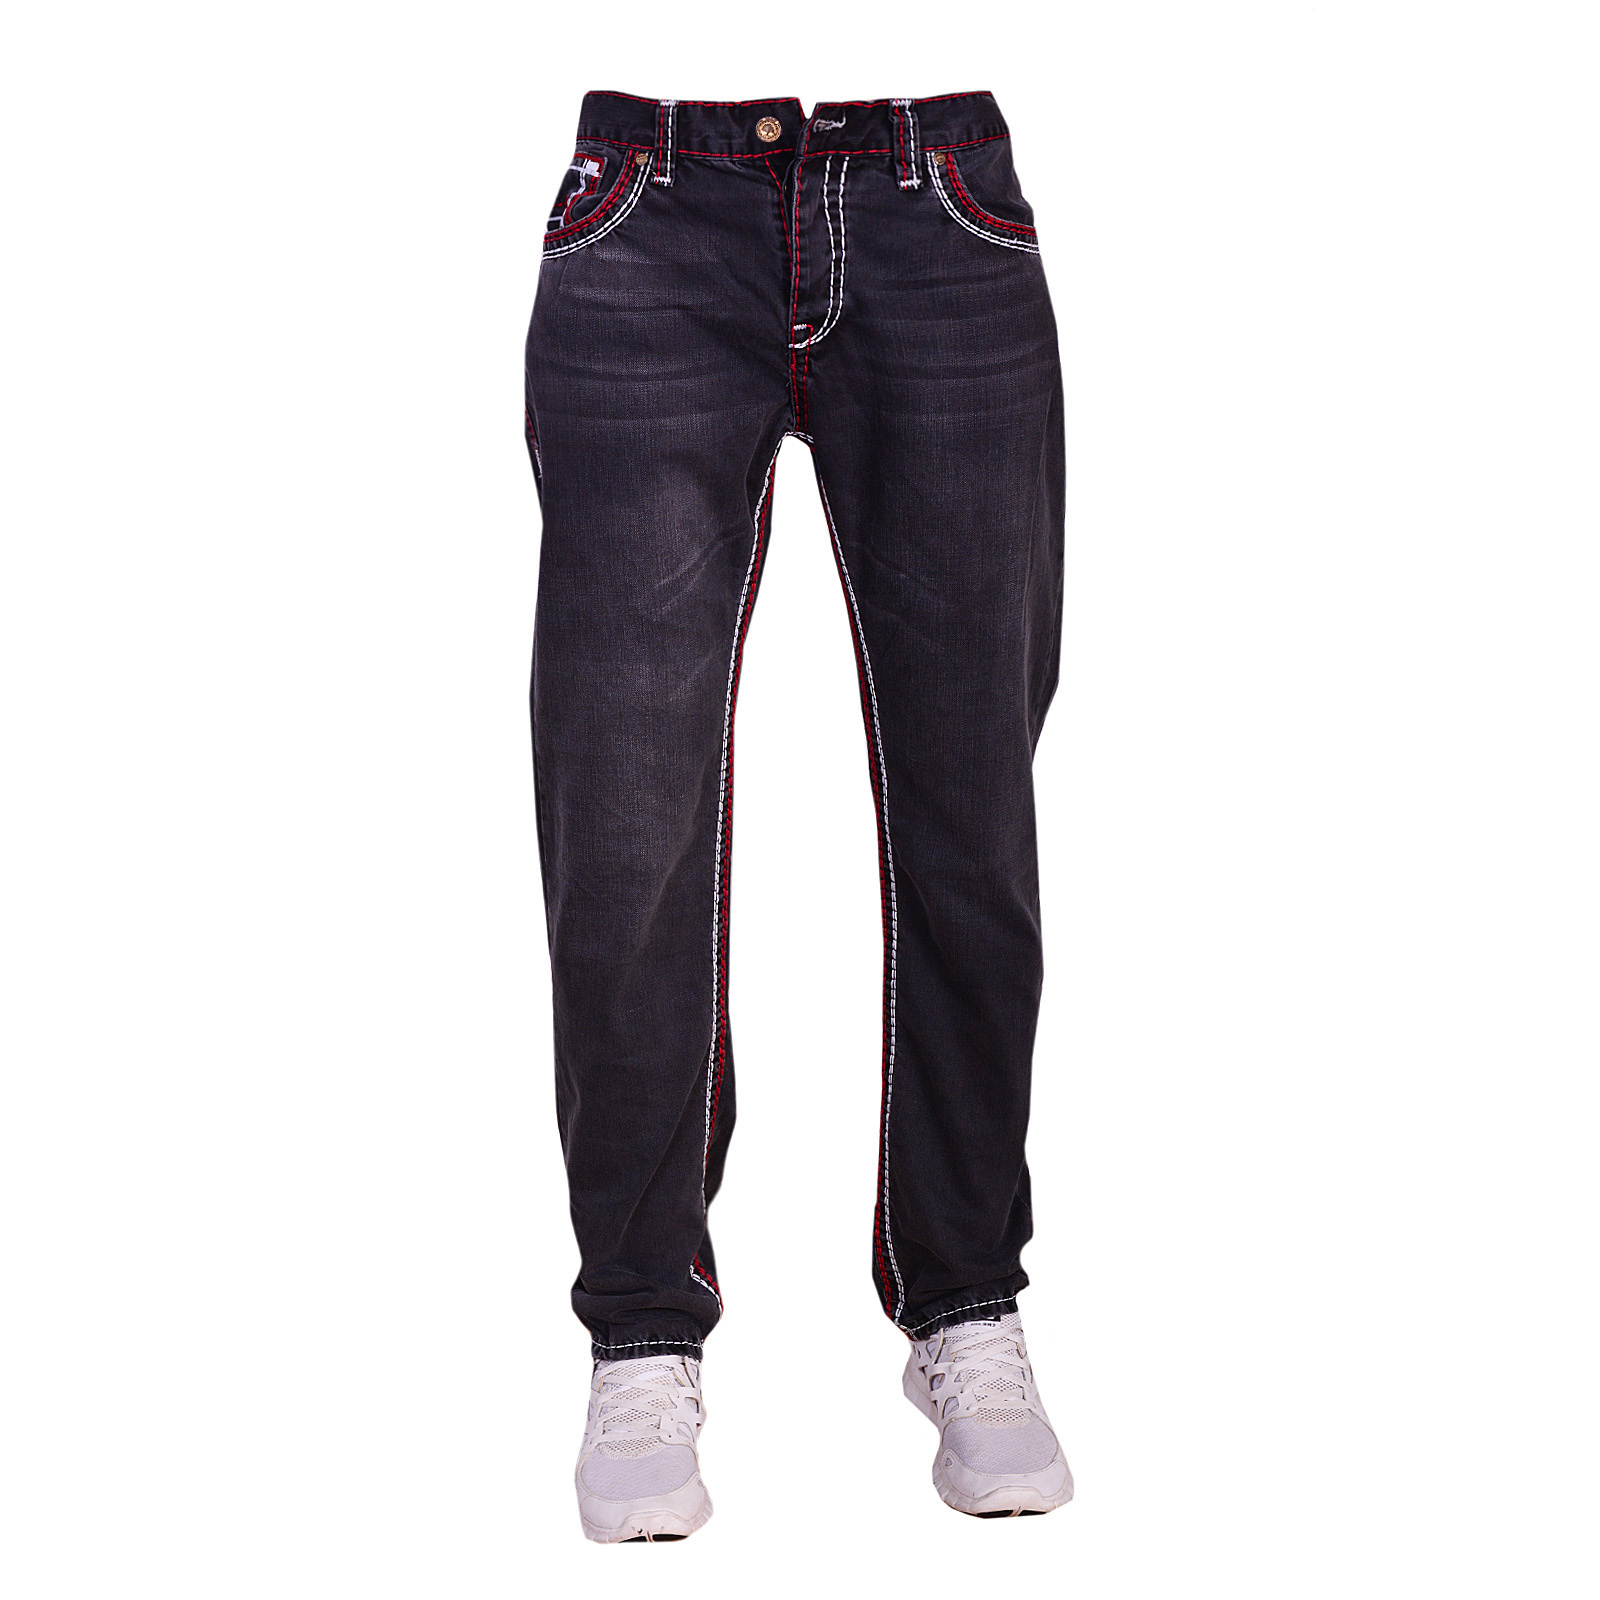 Amica Jeans  Amica Jeans 9574-B3